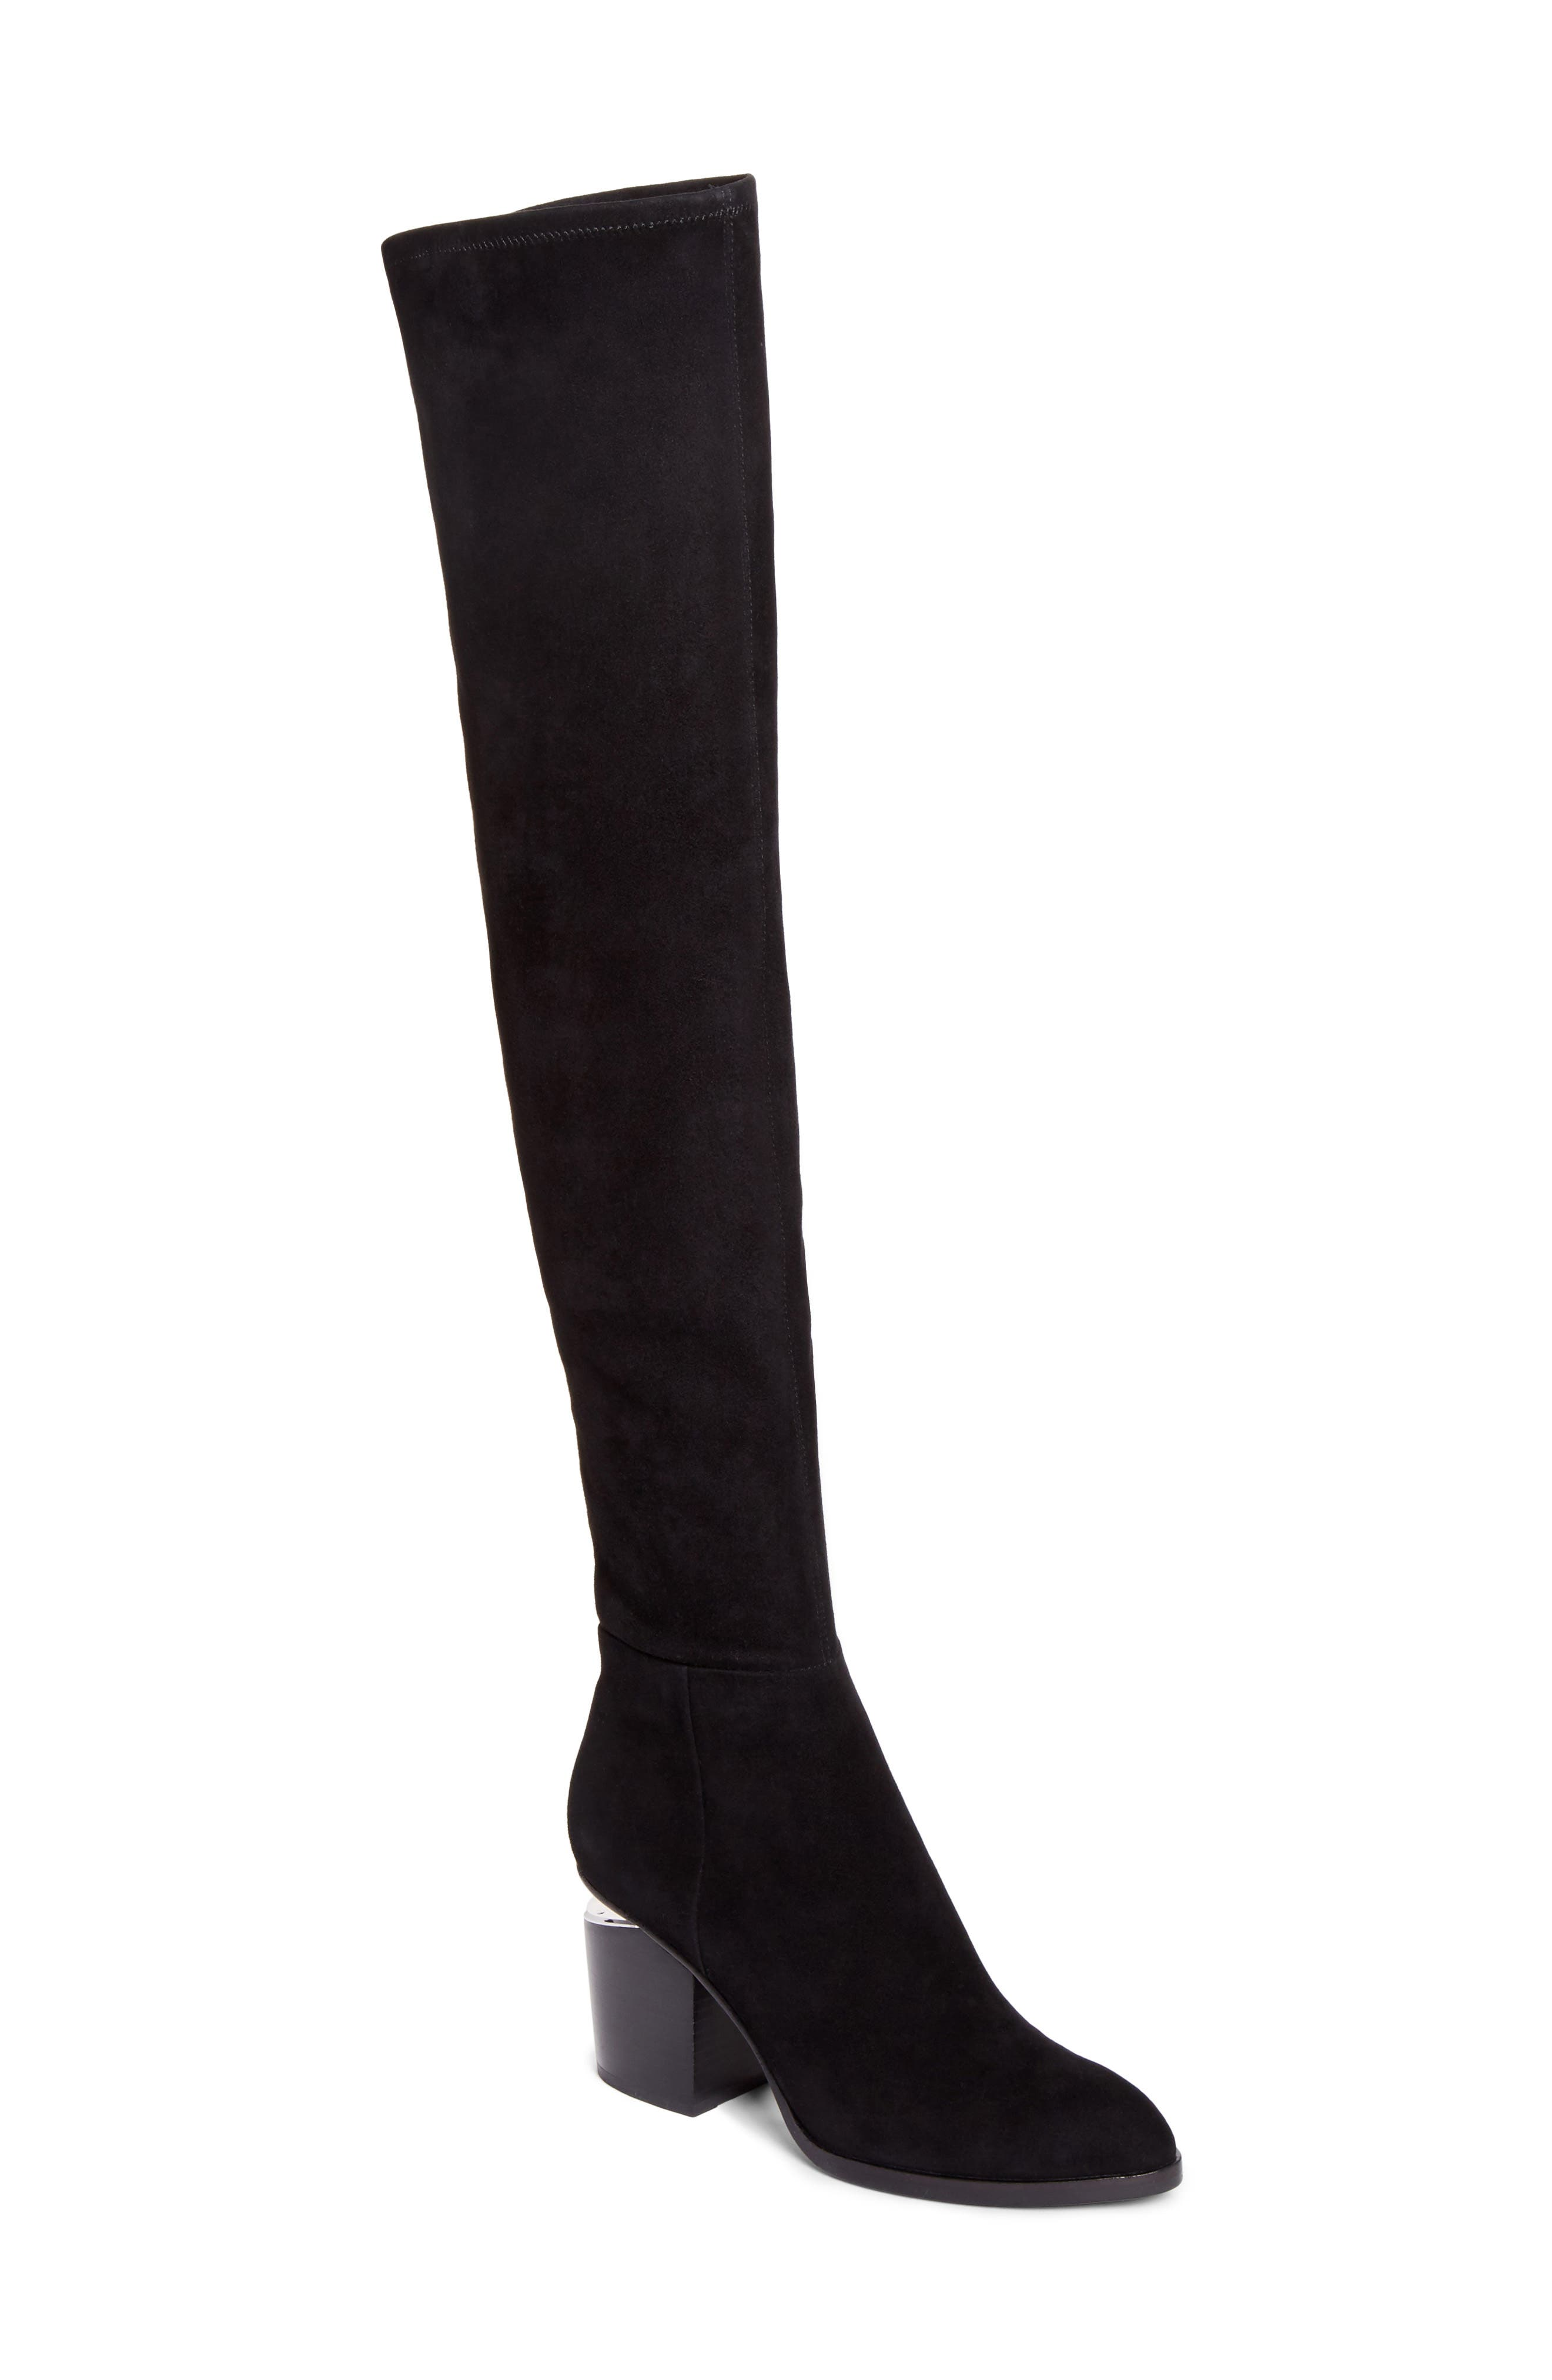 Gabi Over the Knee Boot,                             Main thumbnail 1, color,                             001